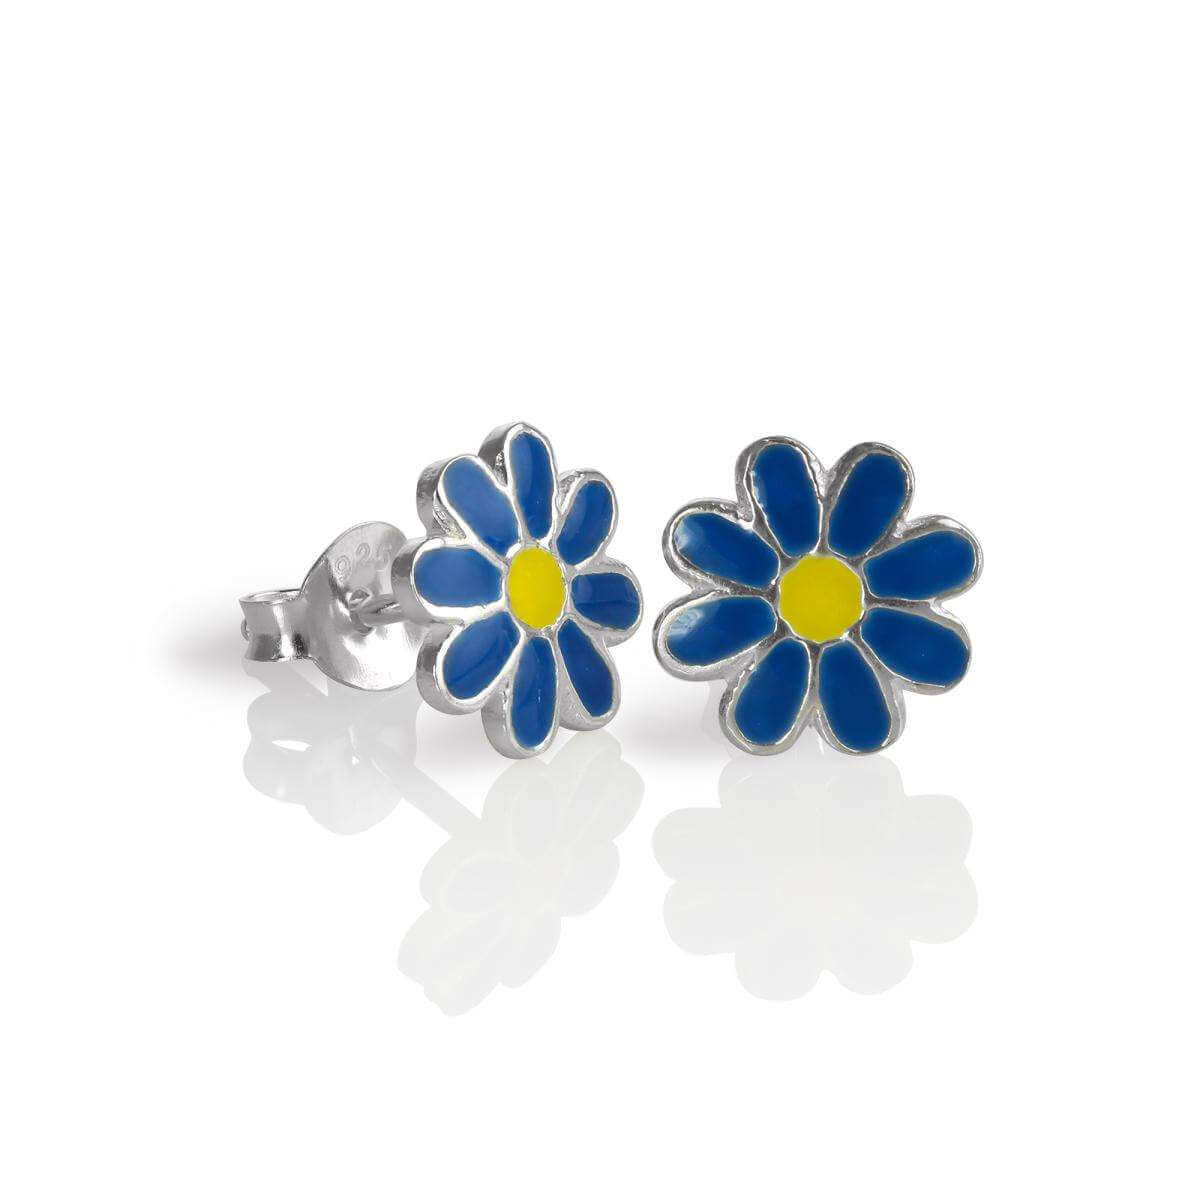 Sterling Silver & Enamel Flat Flower Stud Earrings - Blue